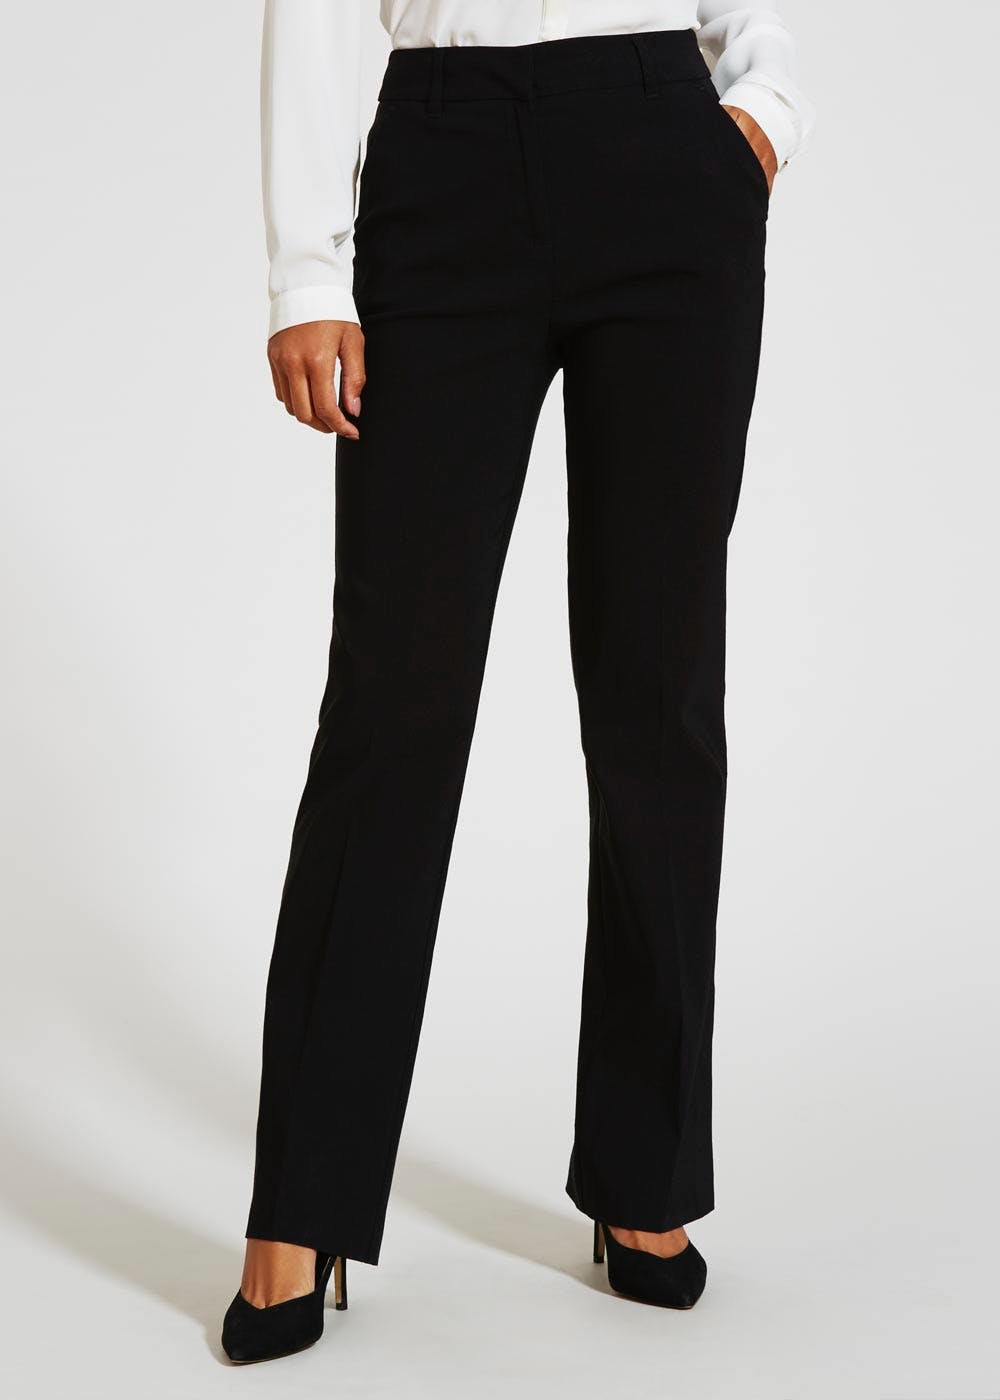 Black Women's Bootcut Pants | DillardsBuy Online Return Instore· Find A Store Near You· New Arrivals Daily· Style Since Types: Dresses, Handbags, Sunglasses, Tops, and More.